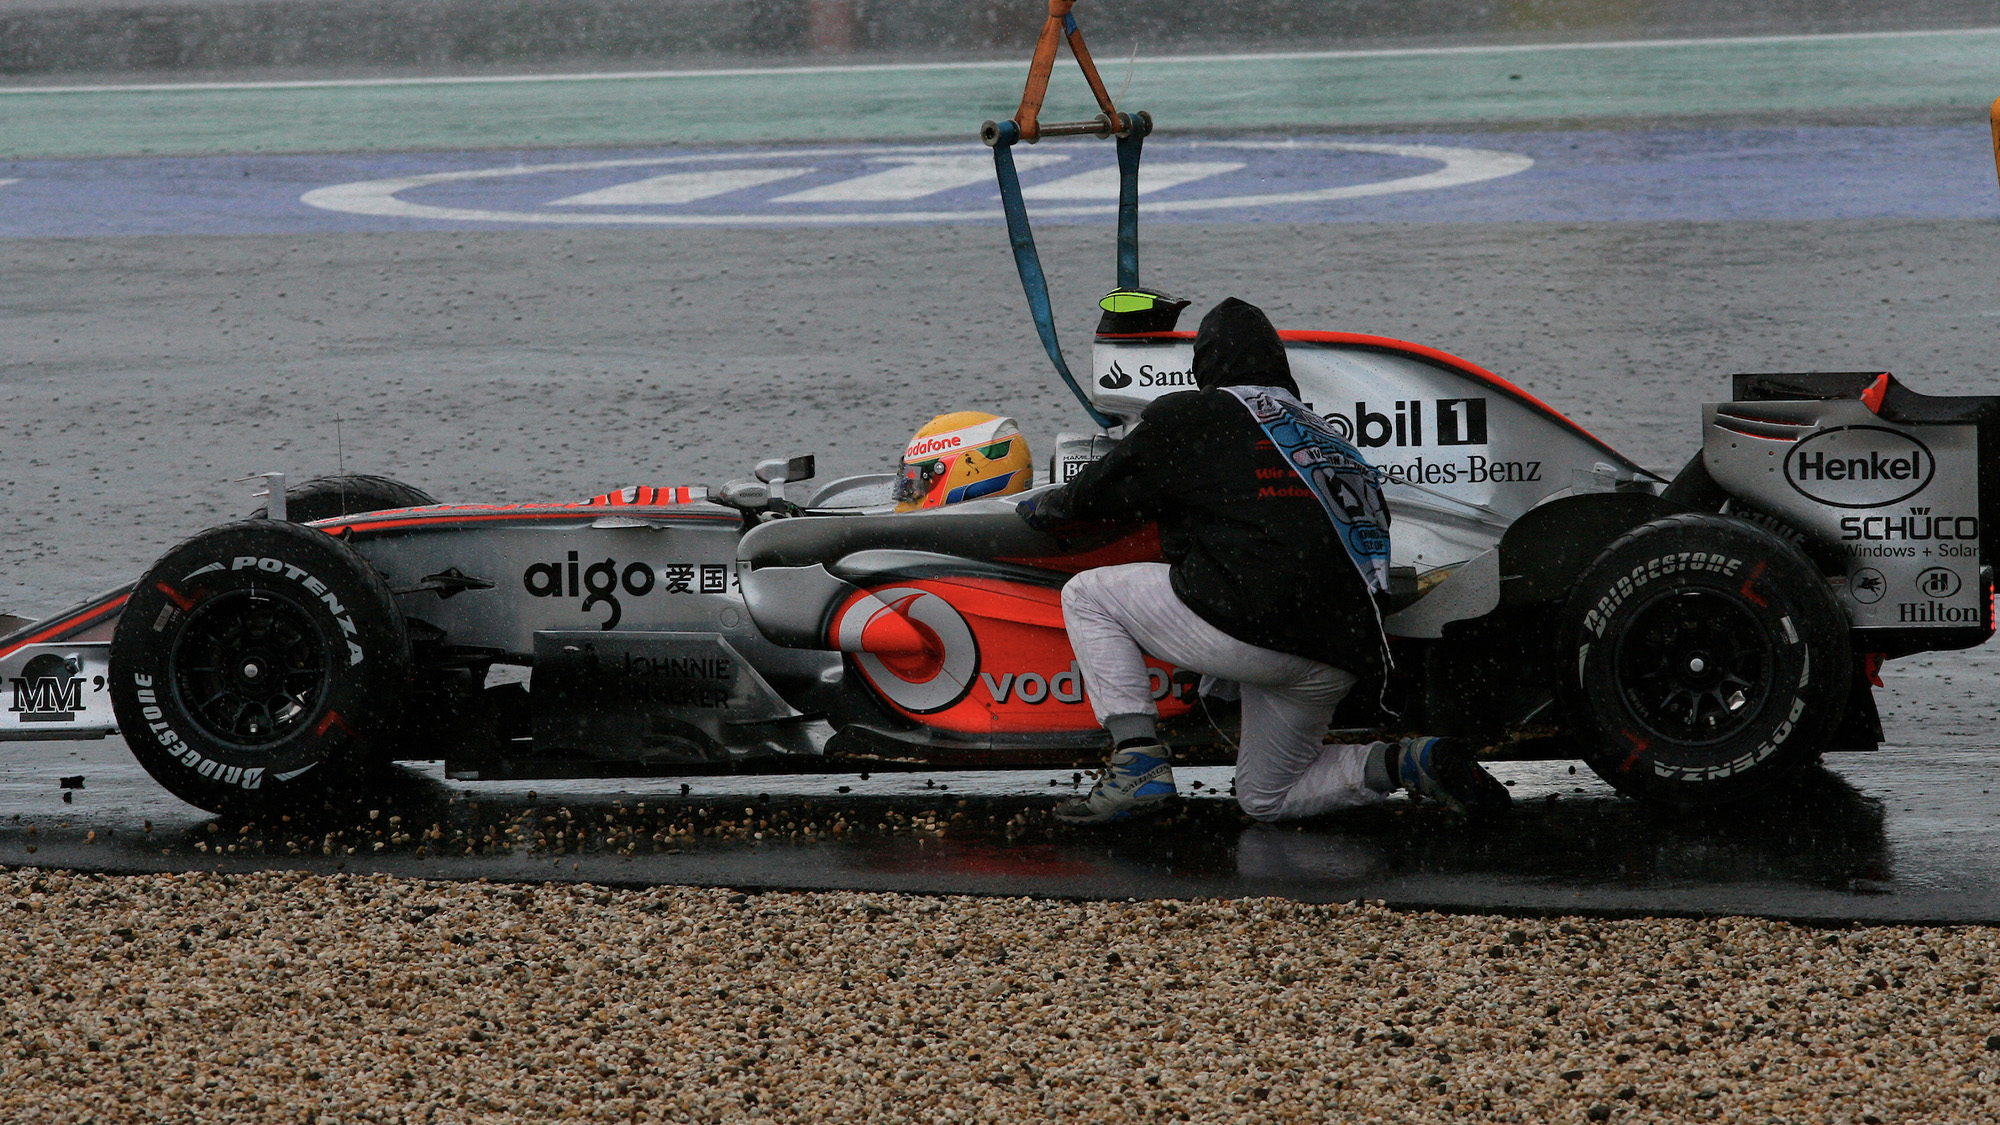 Lewis Hamilton rejoins the 2007 European Grand Prix at the Nurburgring after going off and being lifted out of the gravel by a crane